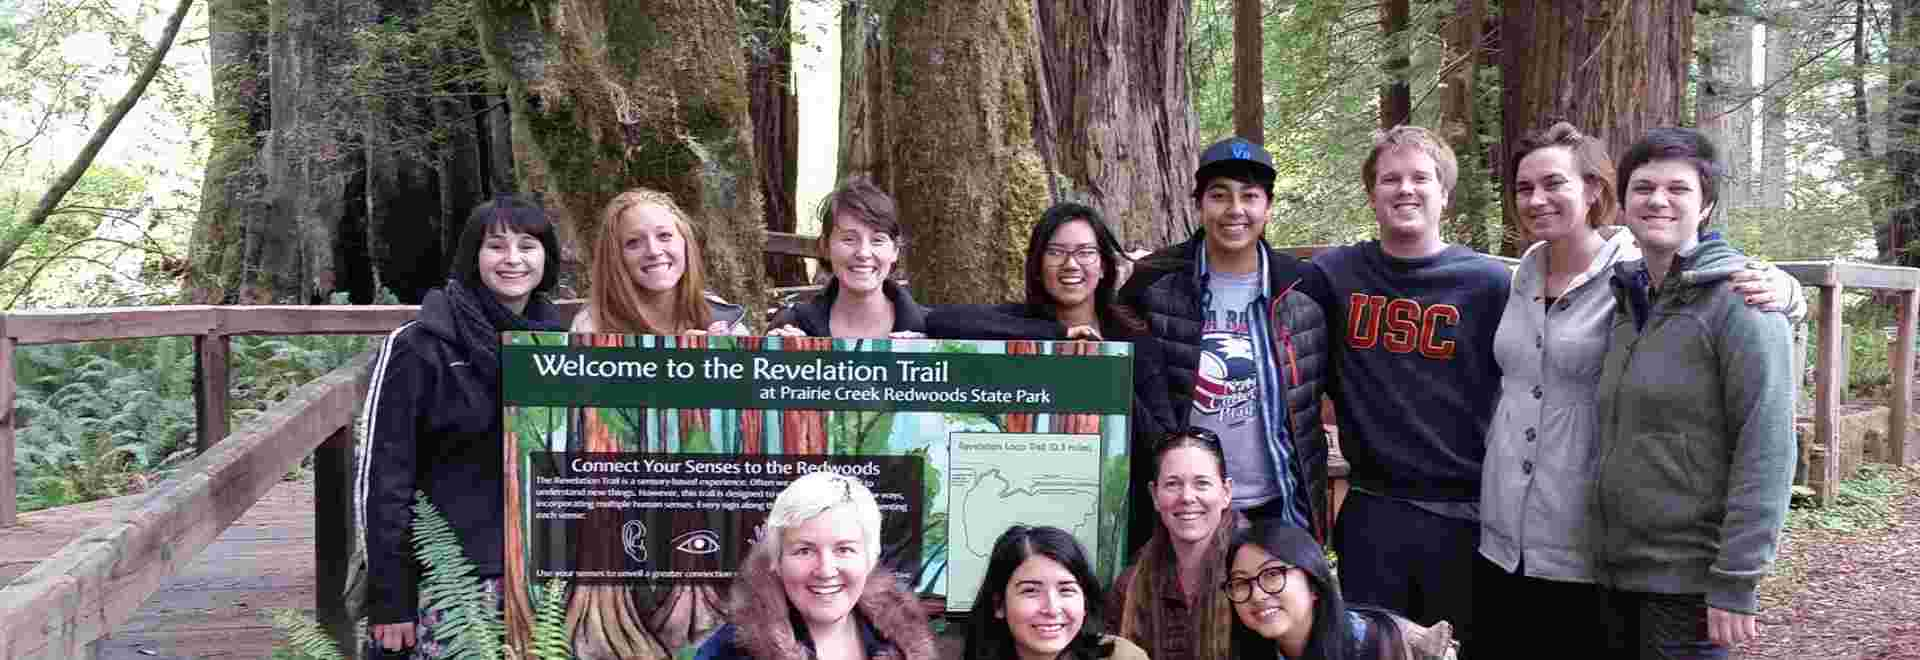 Humboldt State University students proudly showing their work of new interpretive signs on the Revelation Trail of Prairie Creek Redwoods State Park